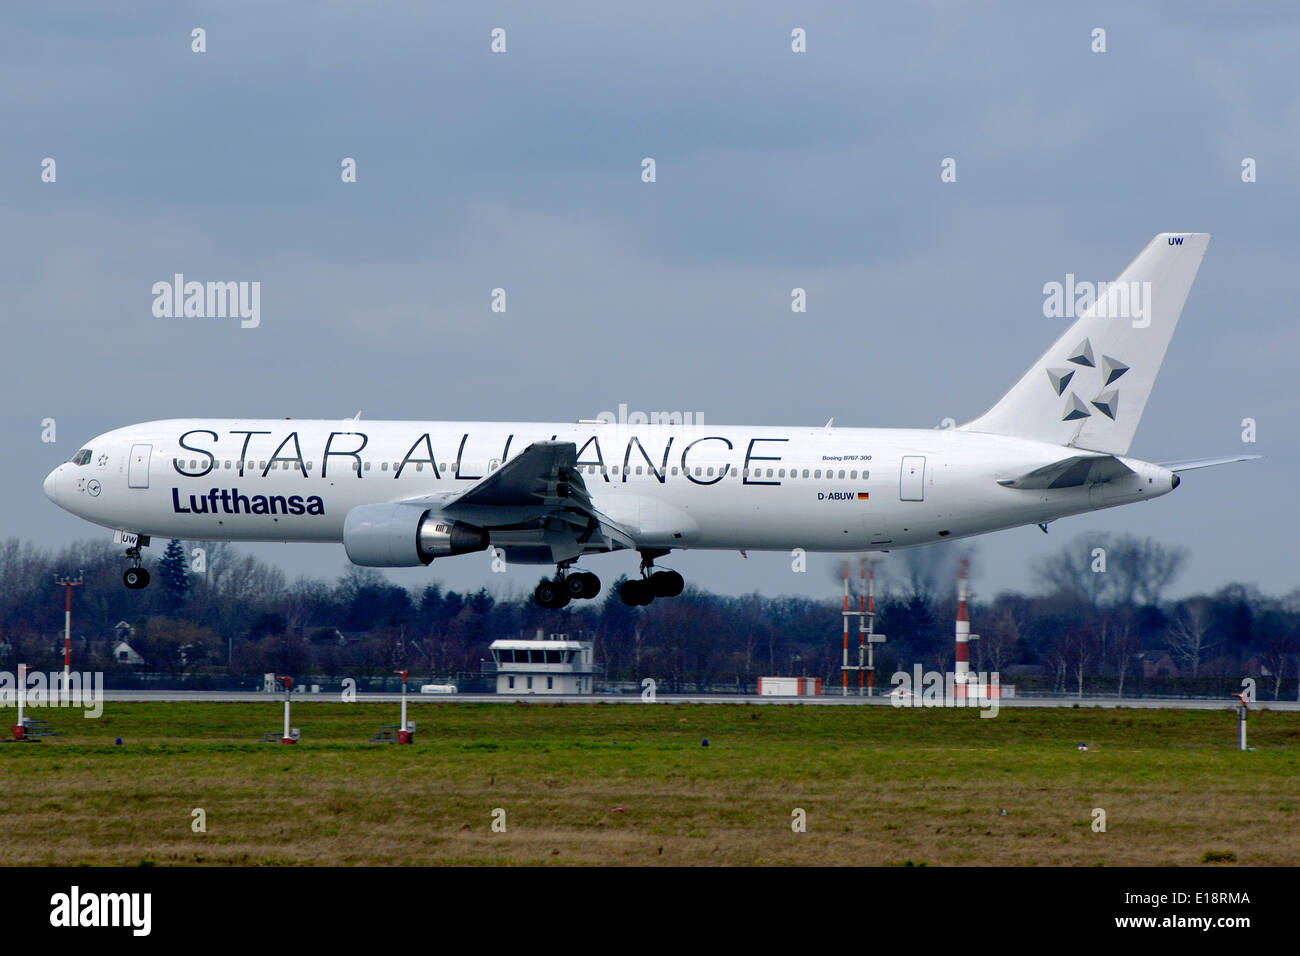 A Boeing 767 300 Passenger Aircraft Of German Airline Lufthansa Is Stock Photo Royalty Free